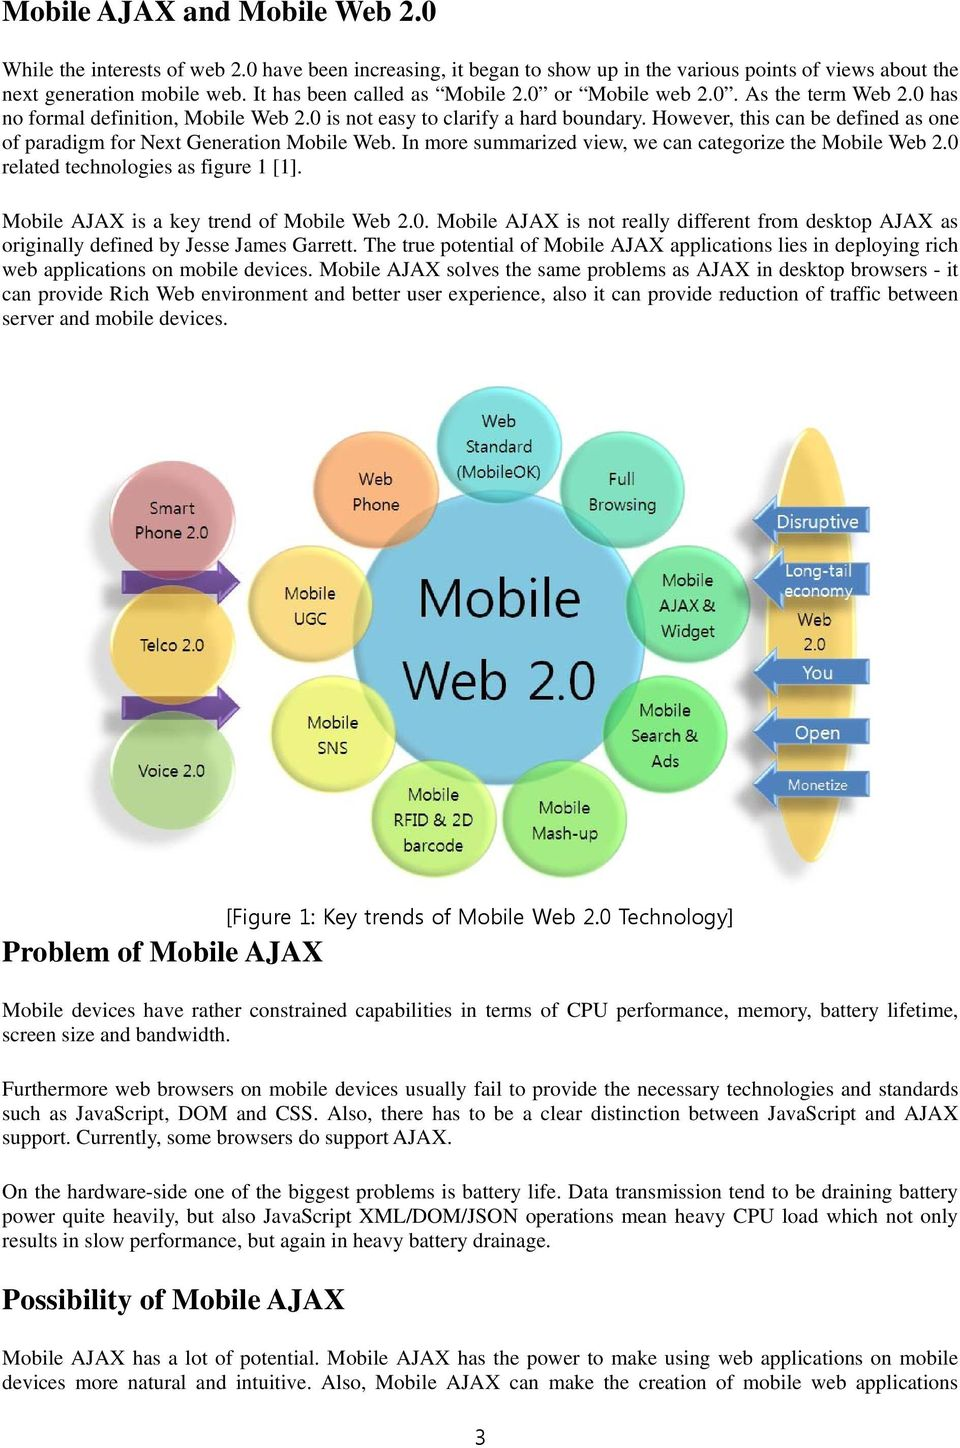 However, this can be defined as one of paradigm for Next Generation Mobile Web. In more summarized view, we can categorize the Mobile Web 2.0 related technologies as figure 1 [1].